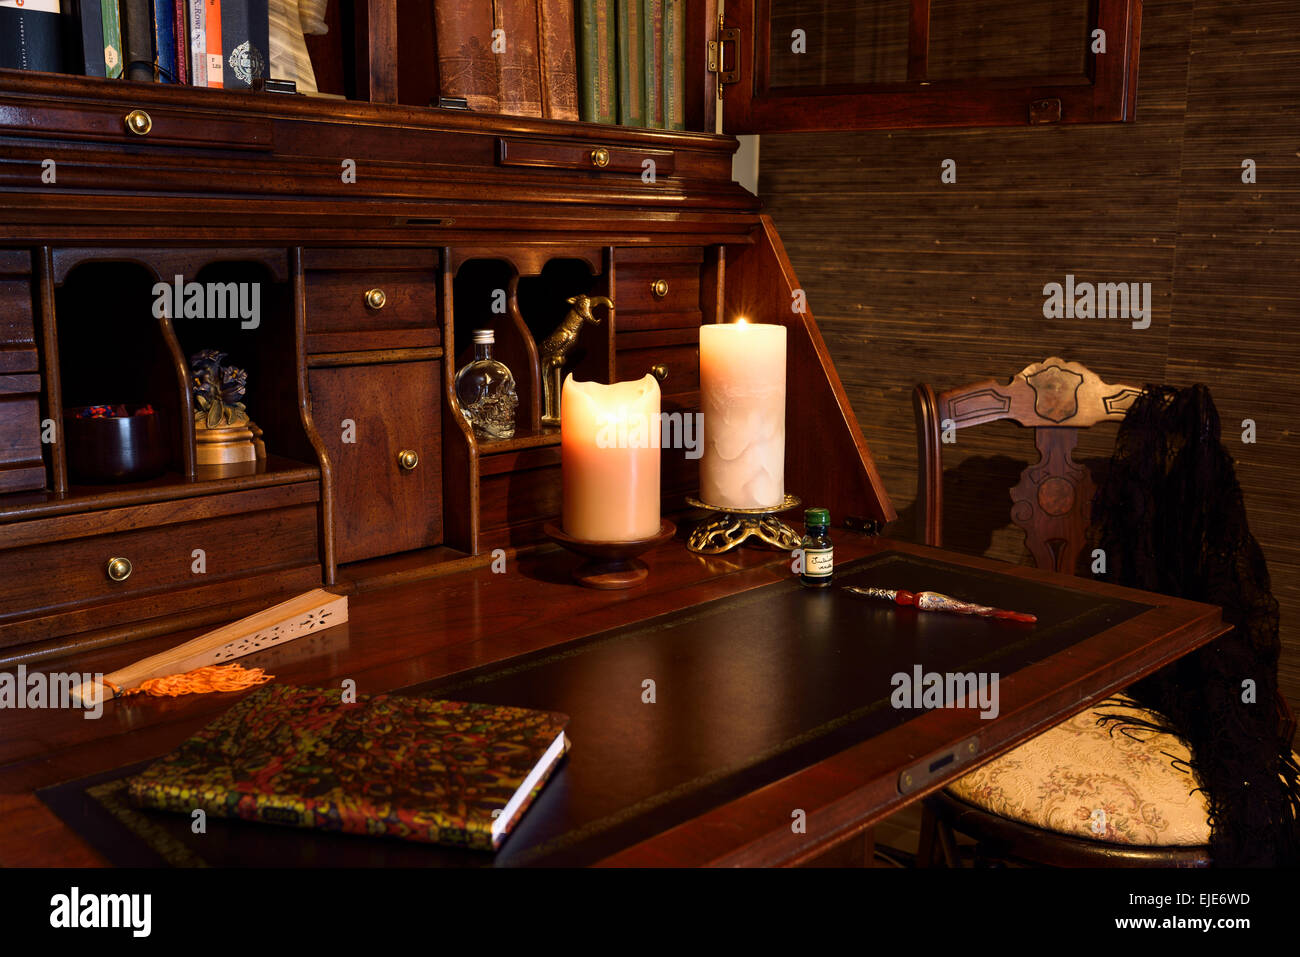 Phenomenal Antique Secretary Writing Desk In Moody Dark Room With Download Free Architecture Designs Embacsunscenecom